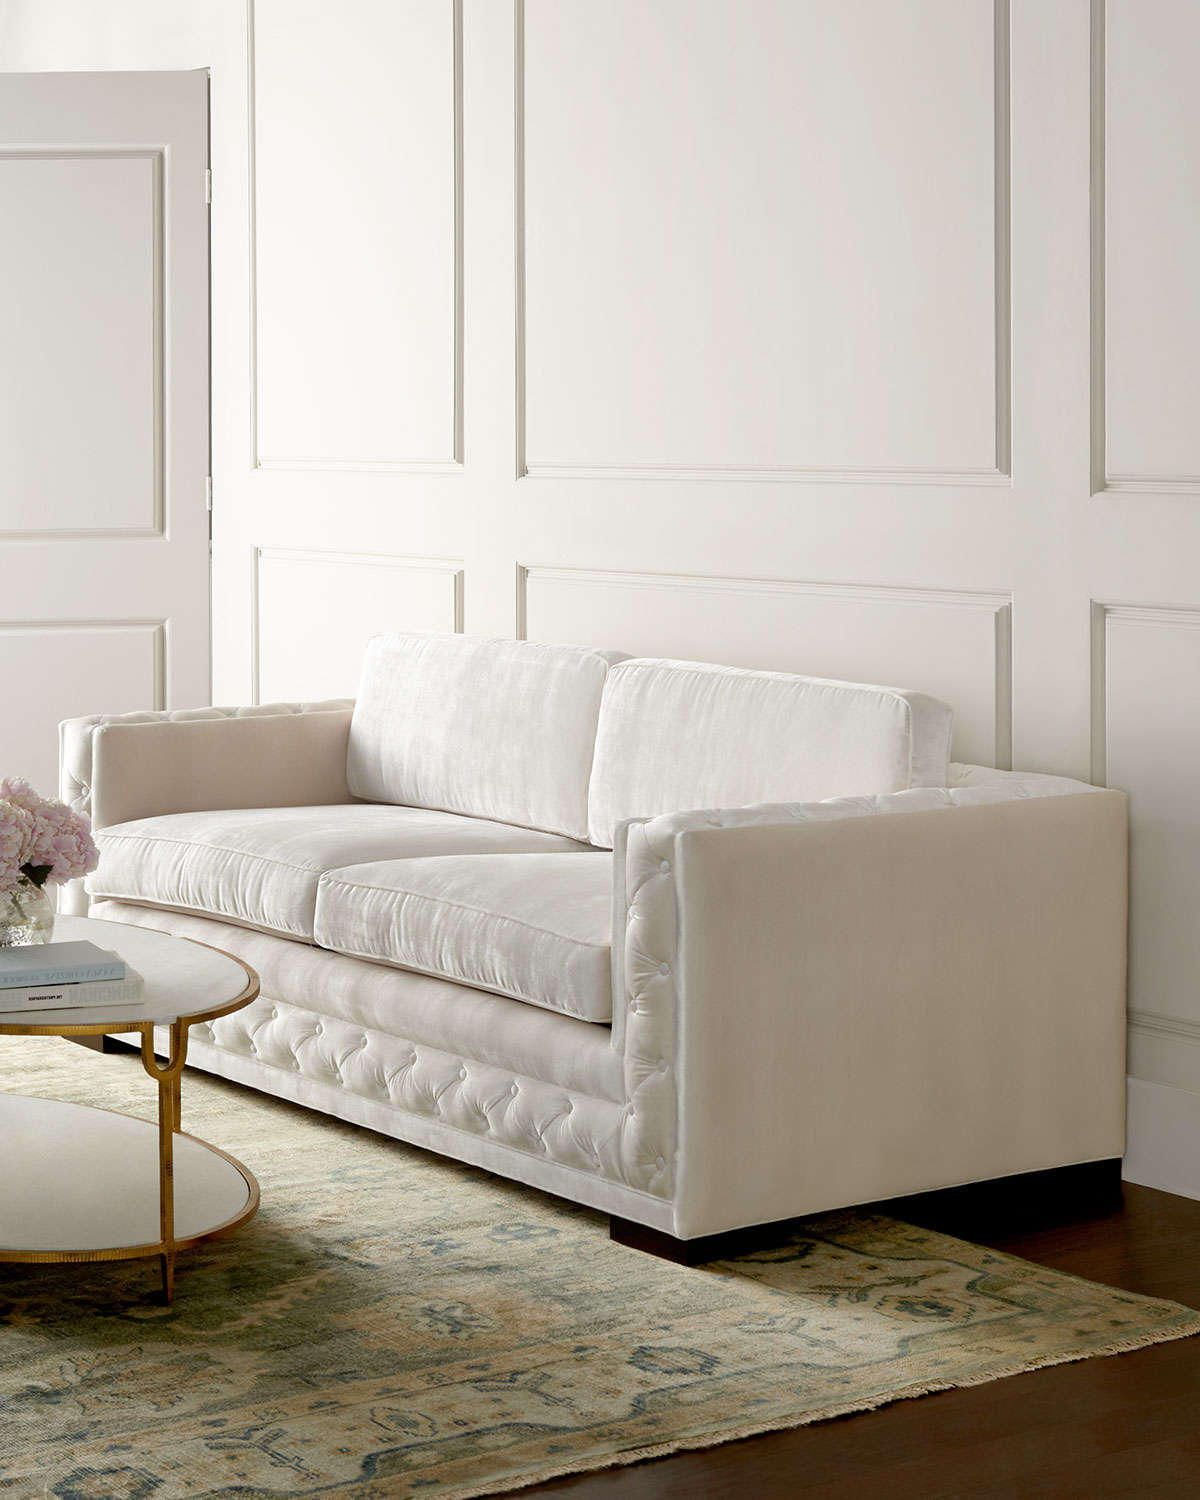 Fall In Love With This Beautiful And Luxurious Cream Colored Tuxedo Sofa This Is Perfect For Mode Contemporary Sofa French Country Sofa Transitional Furniture